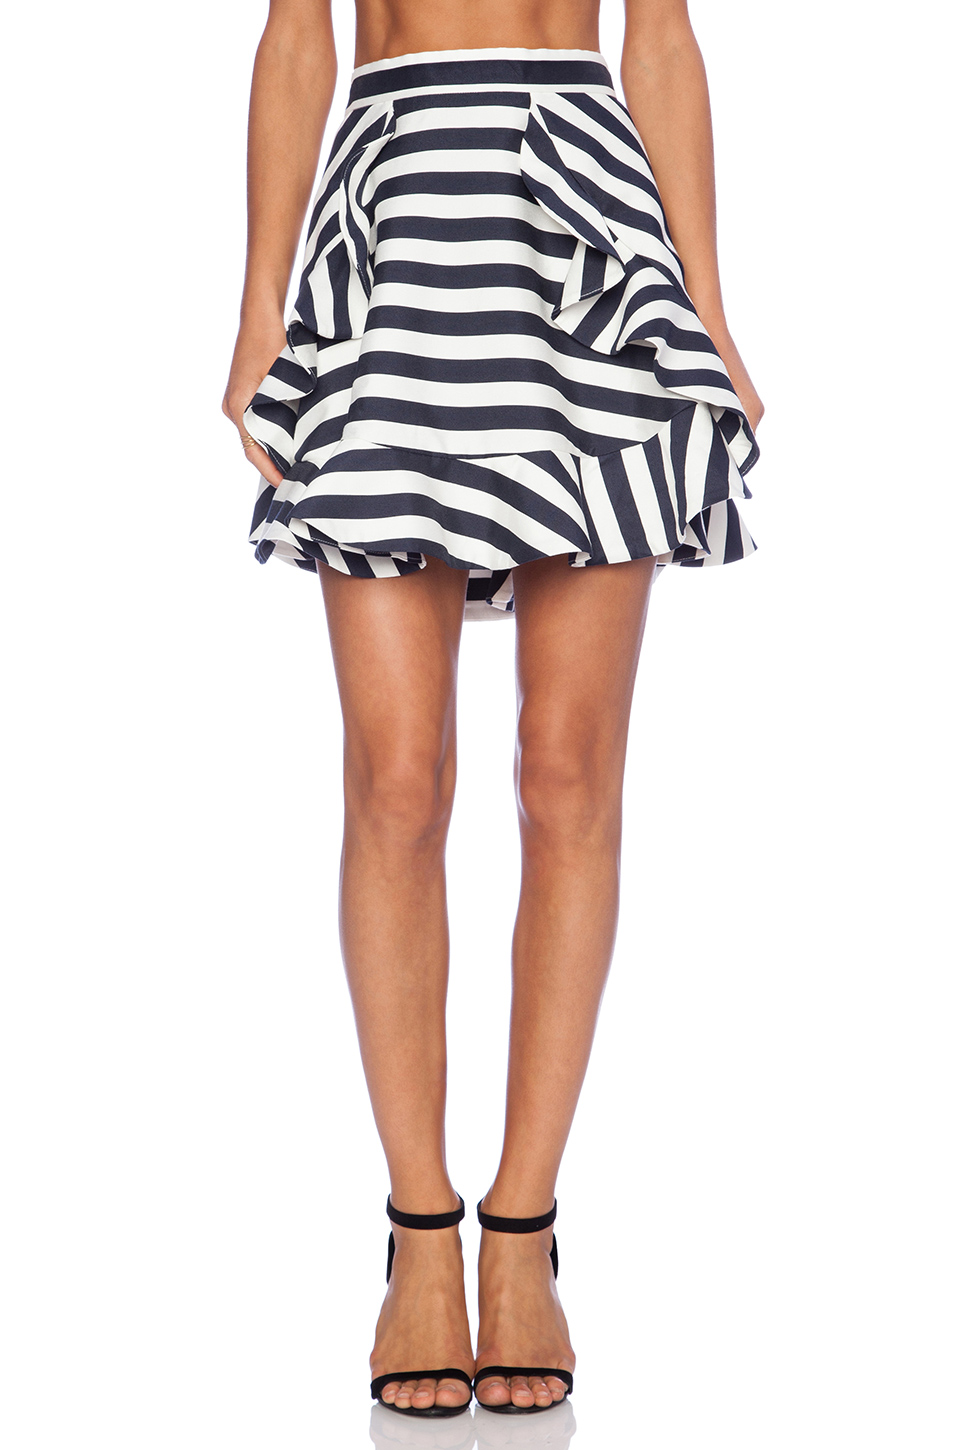 Cameo oceans flare skirt in bold stripe from revolveclothing.com